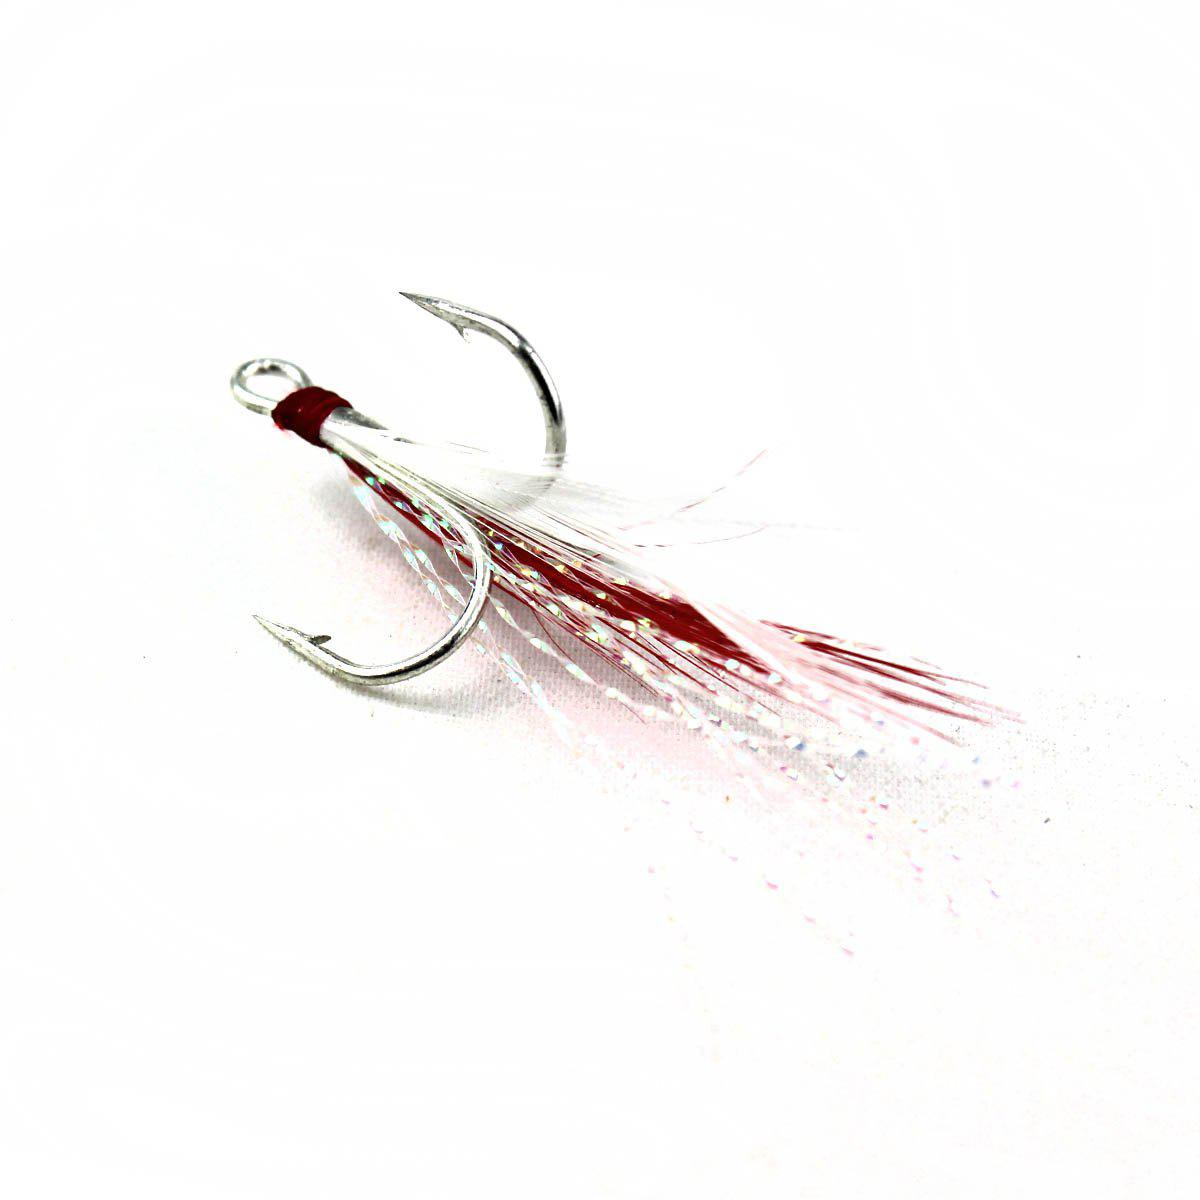 No. 4 Feather Hook with Three Fishing Barb - AS THE PICTURE